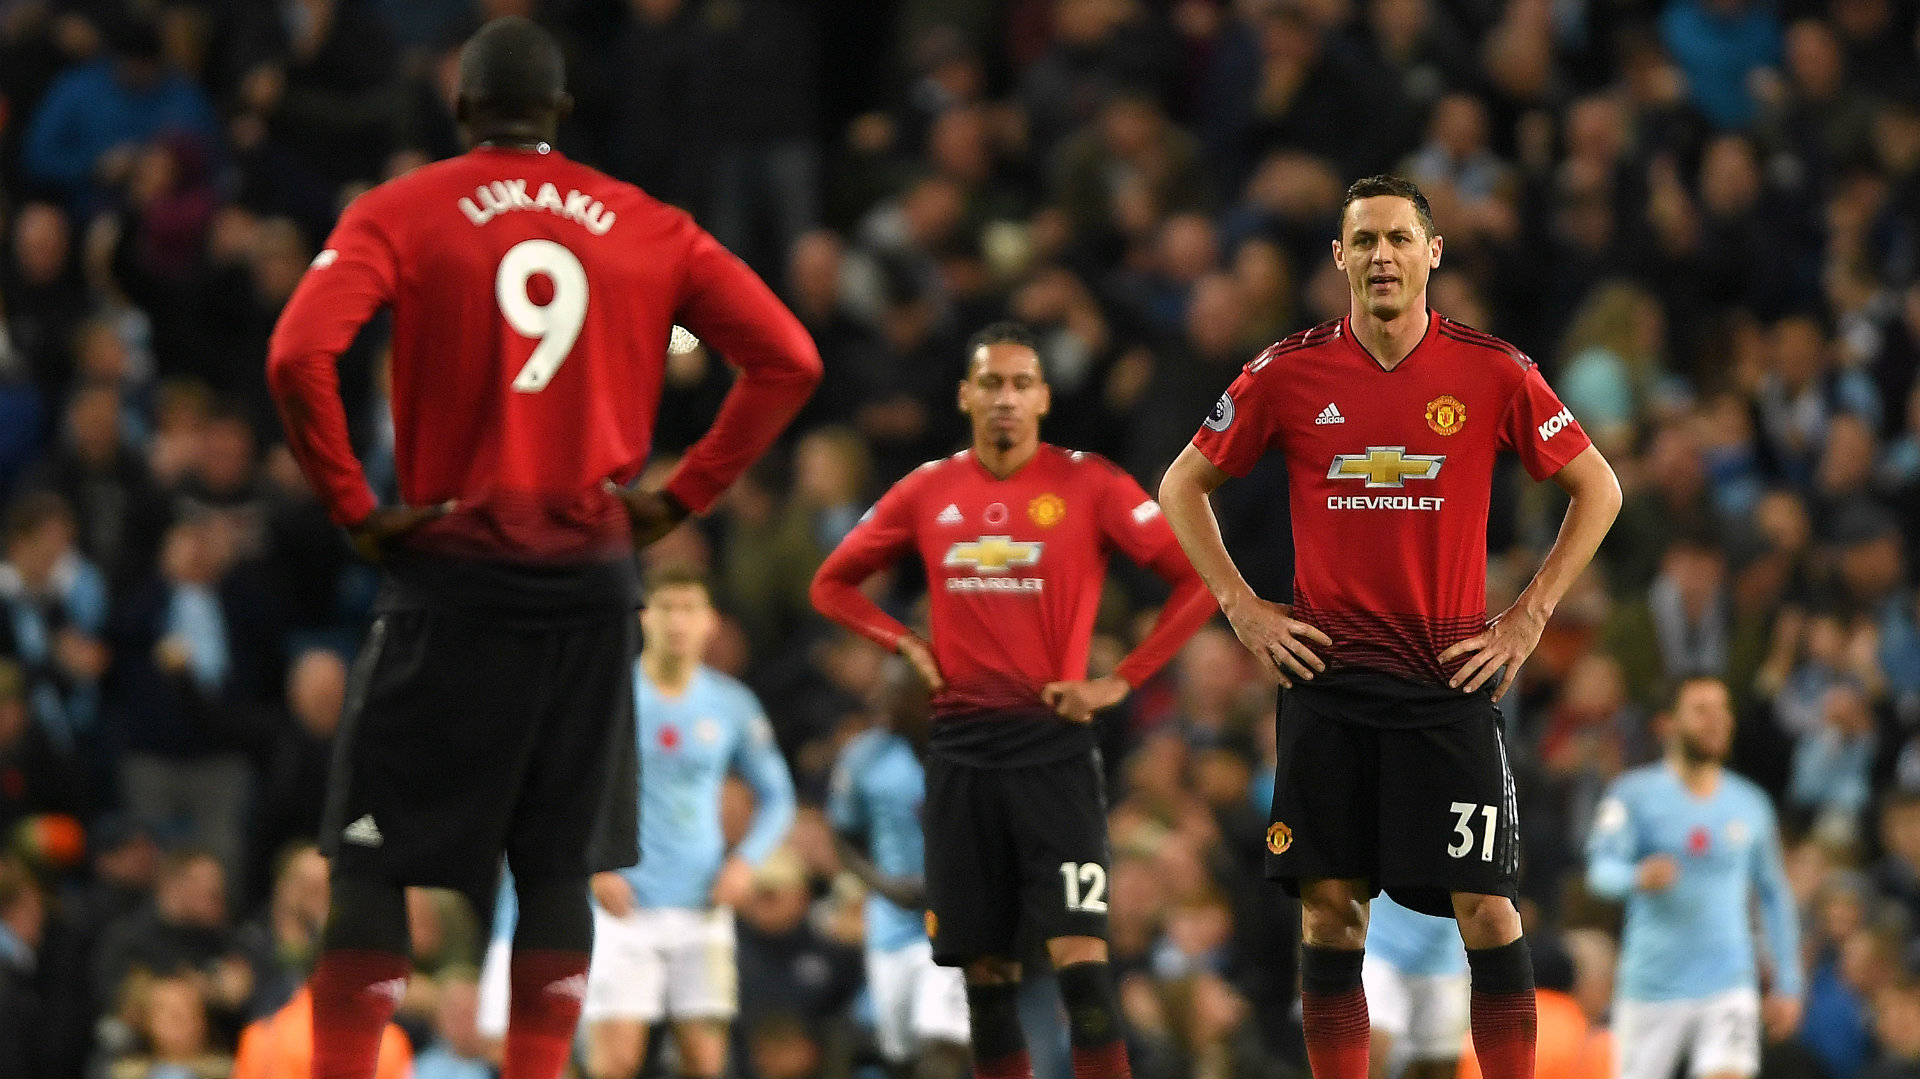 man united vs man city - photo #17